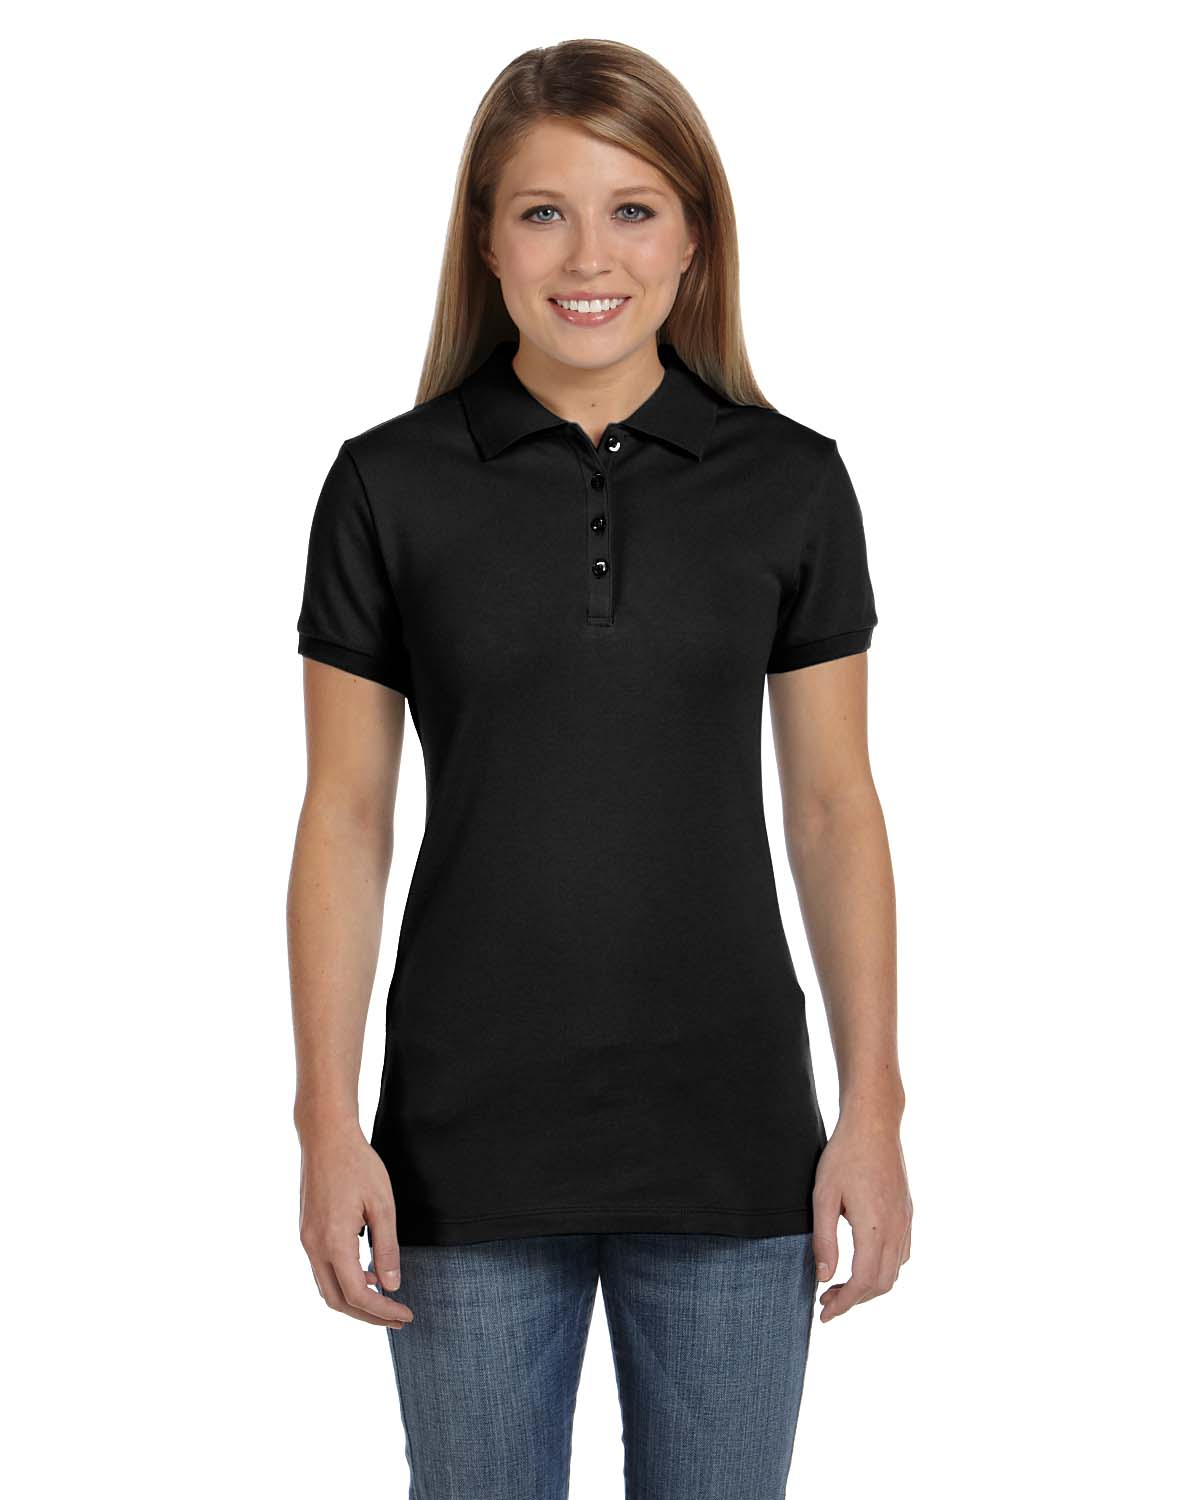 Bella Ladies Cotton Spandex Mini Pique Short-Sleeve Polo